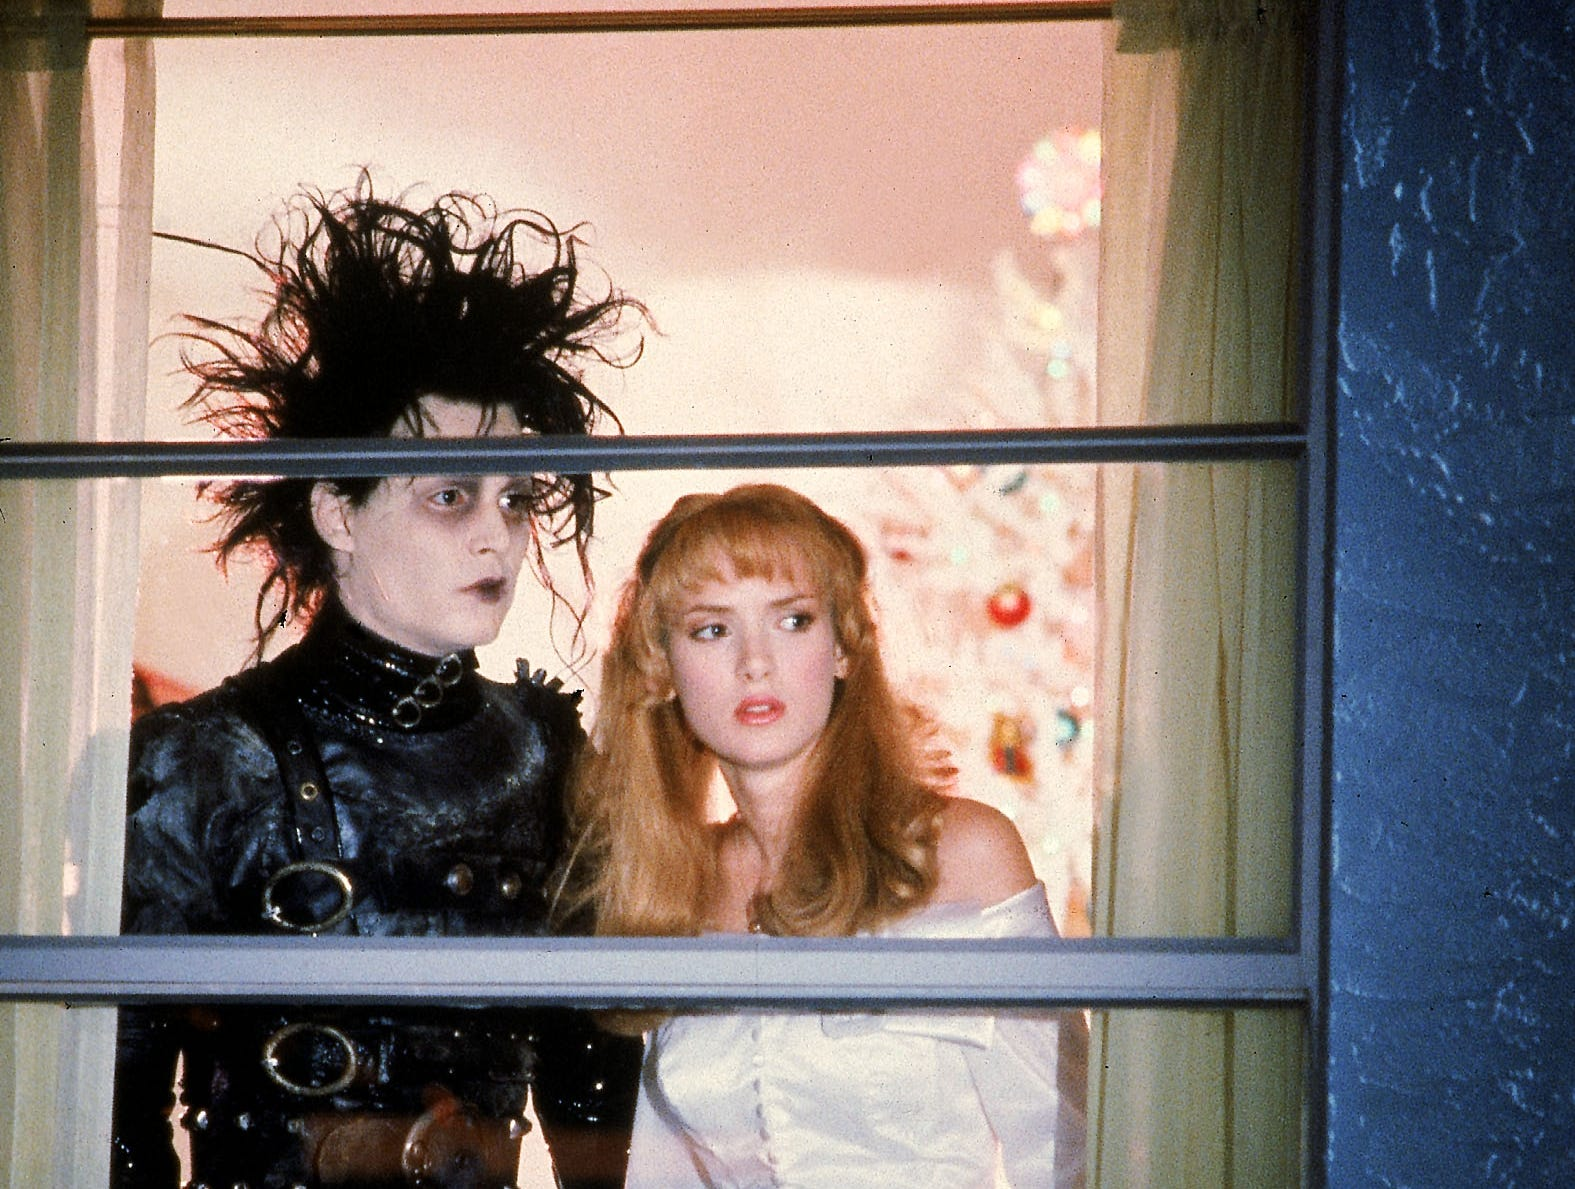 Johnny Depp, left, and WInona Ryder in a scene from the 1990 motion picture Edward Scissorhands. --- DATE TAKEN: 1990  By Zade Rosenthal   20th Century Fox        HO      - handout ORG XMIT: PX63060